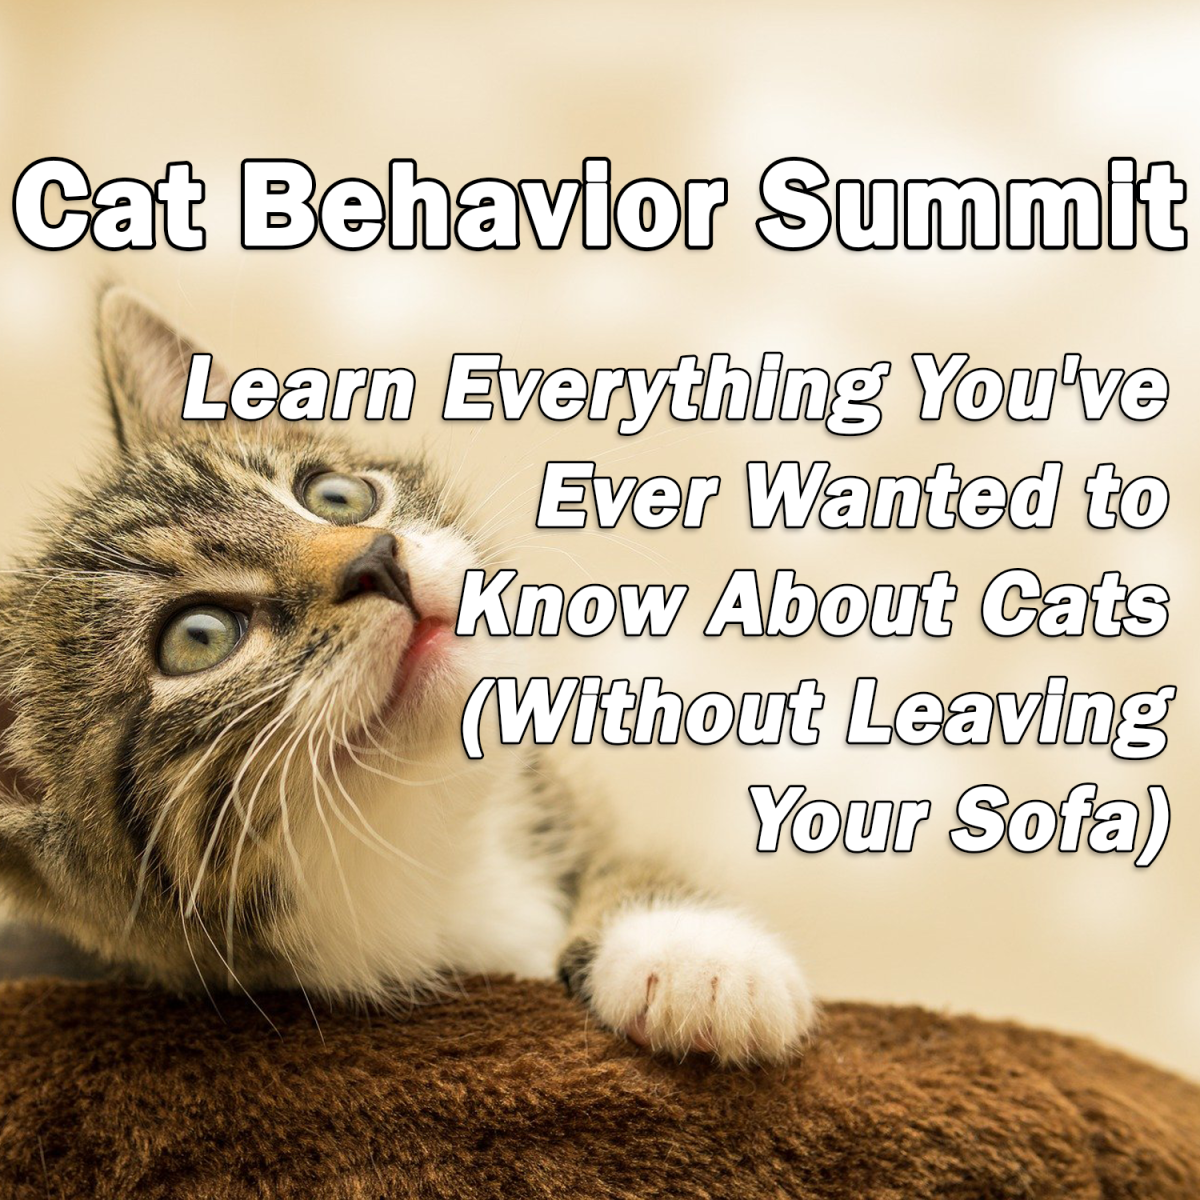 Cat Behavior Summit: Learn Everything You've Ever Wanted to Know About Cats (Without Leaving Your Sofa)